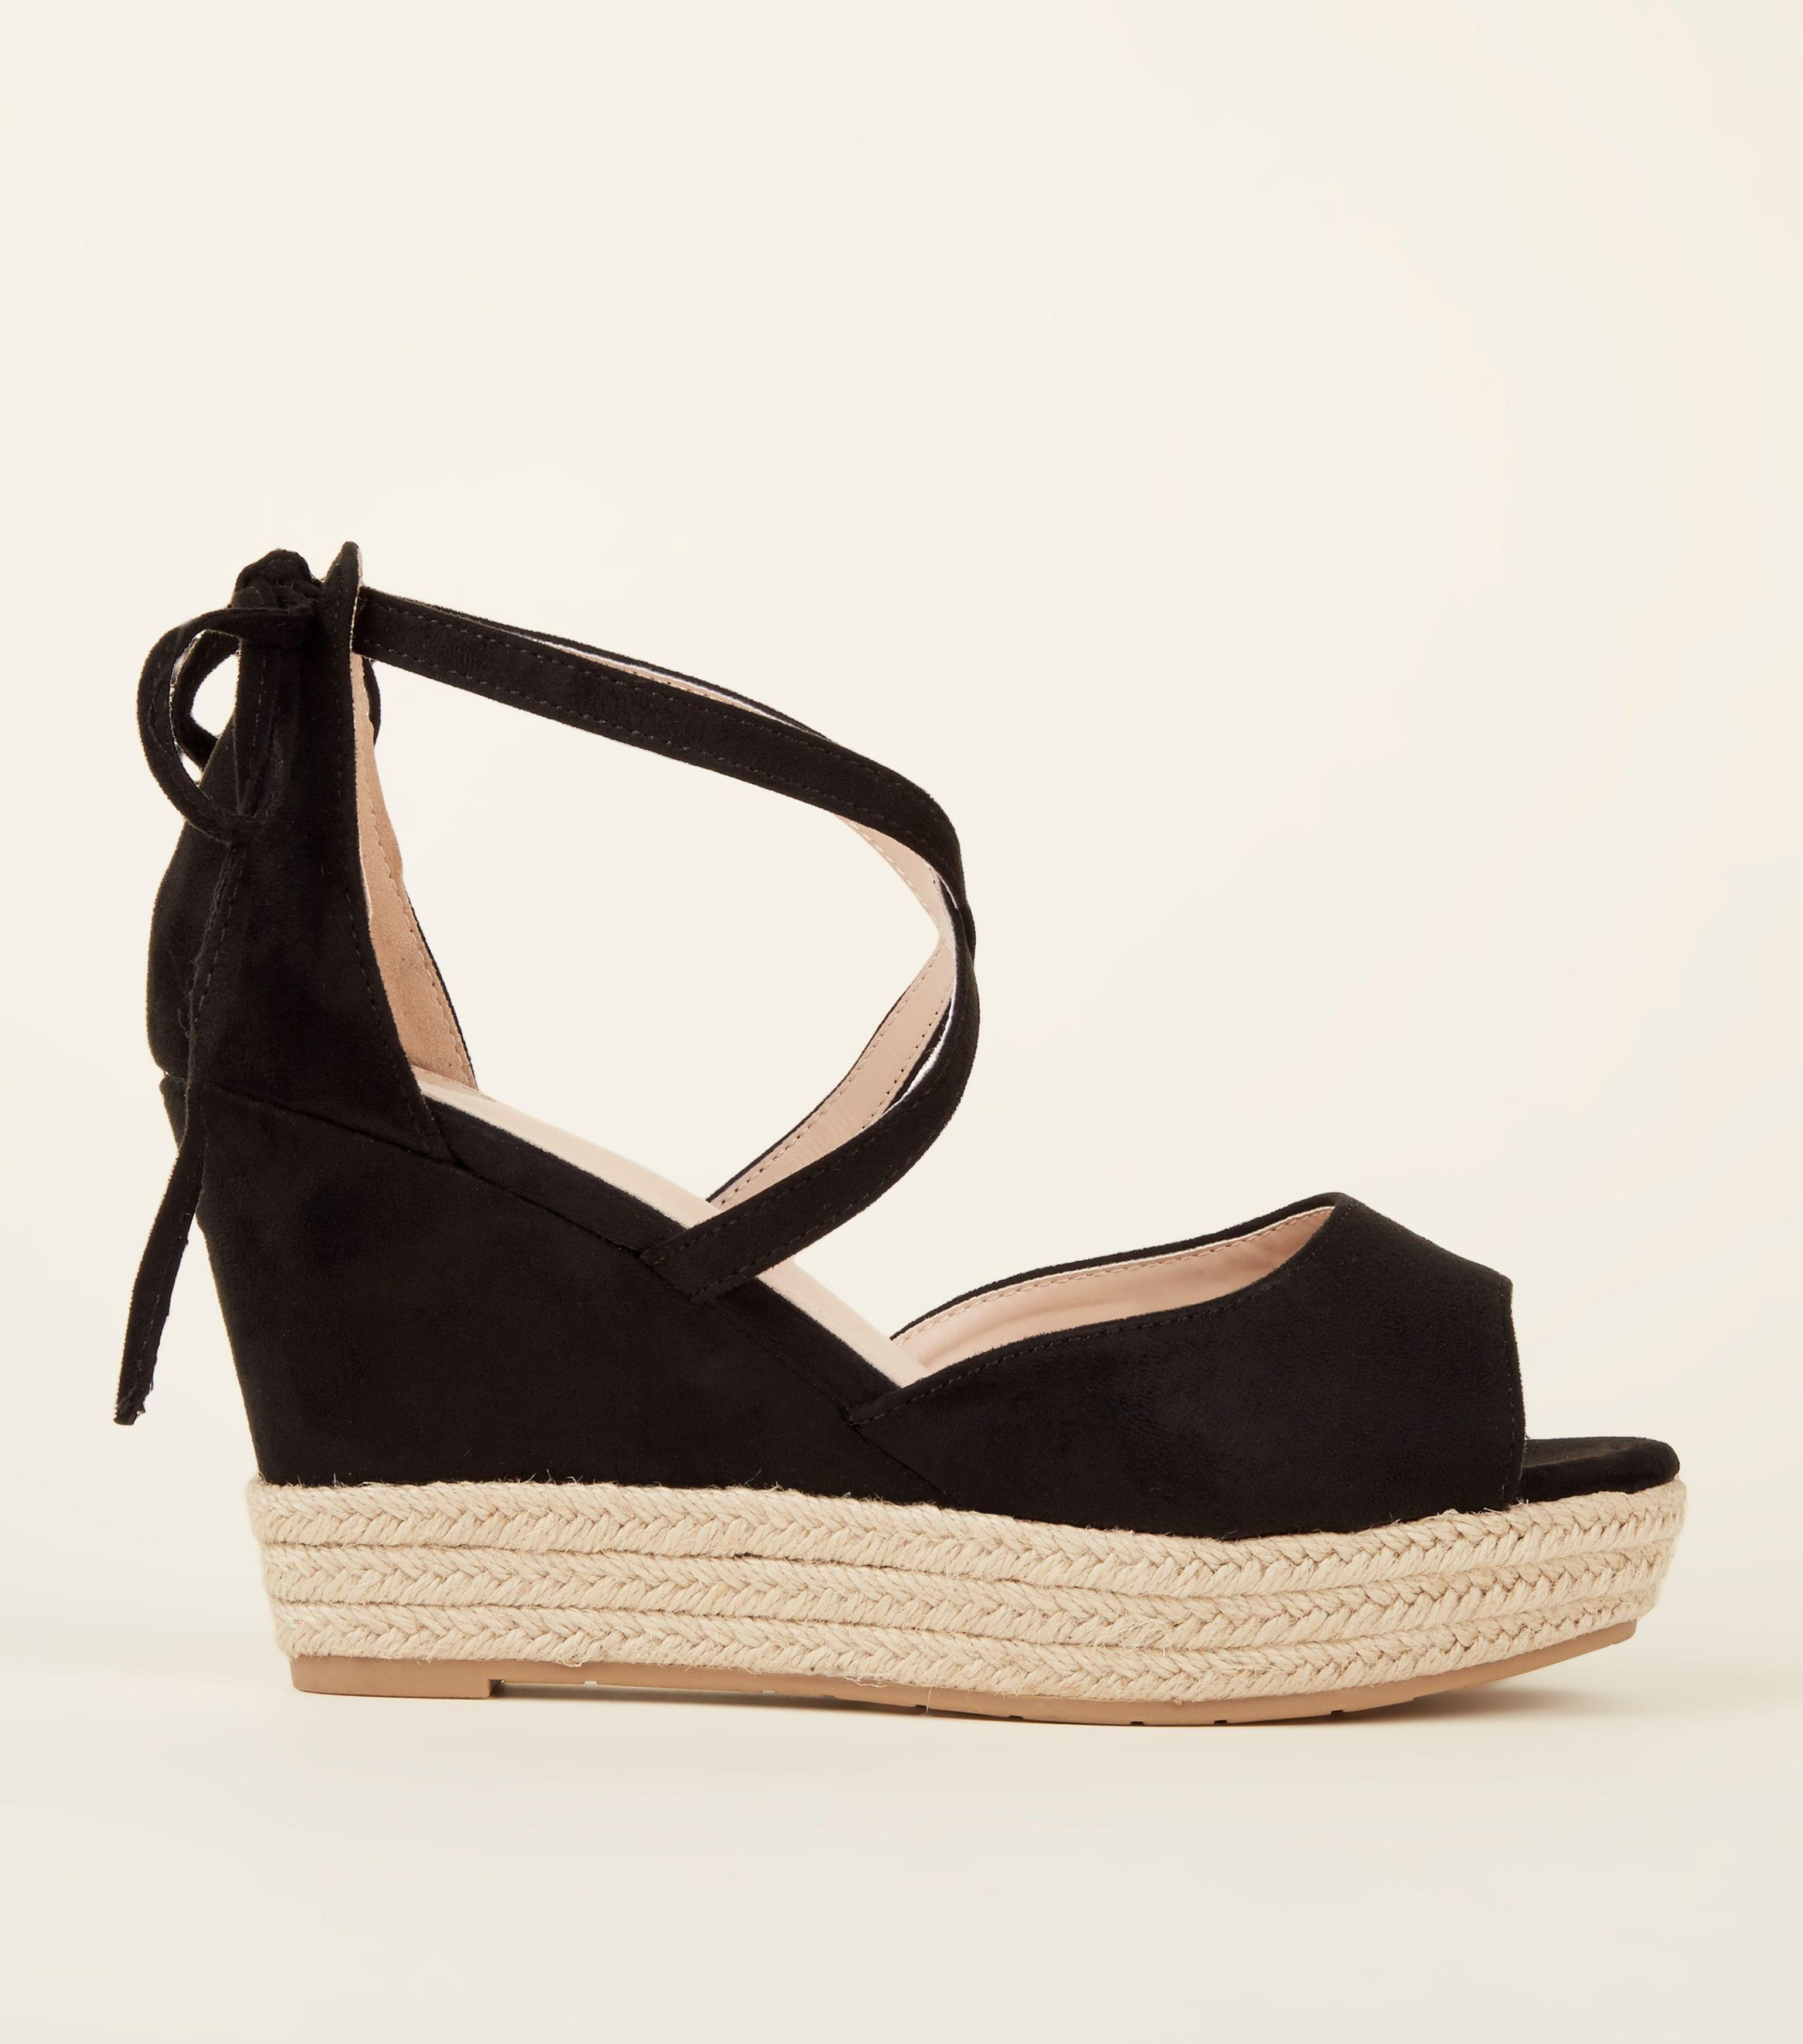 New Look Suedette Bow Wedge C8Xl6TmW